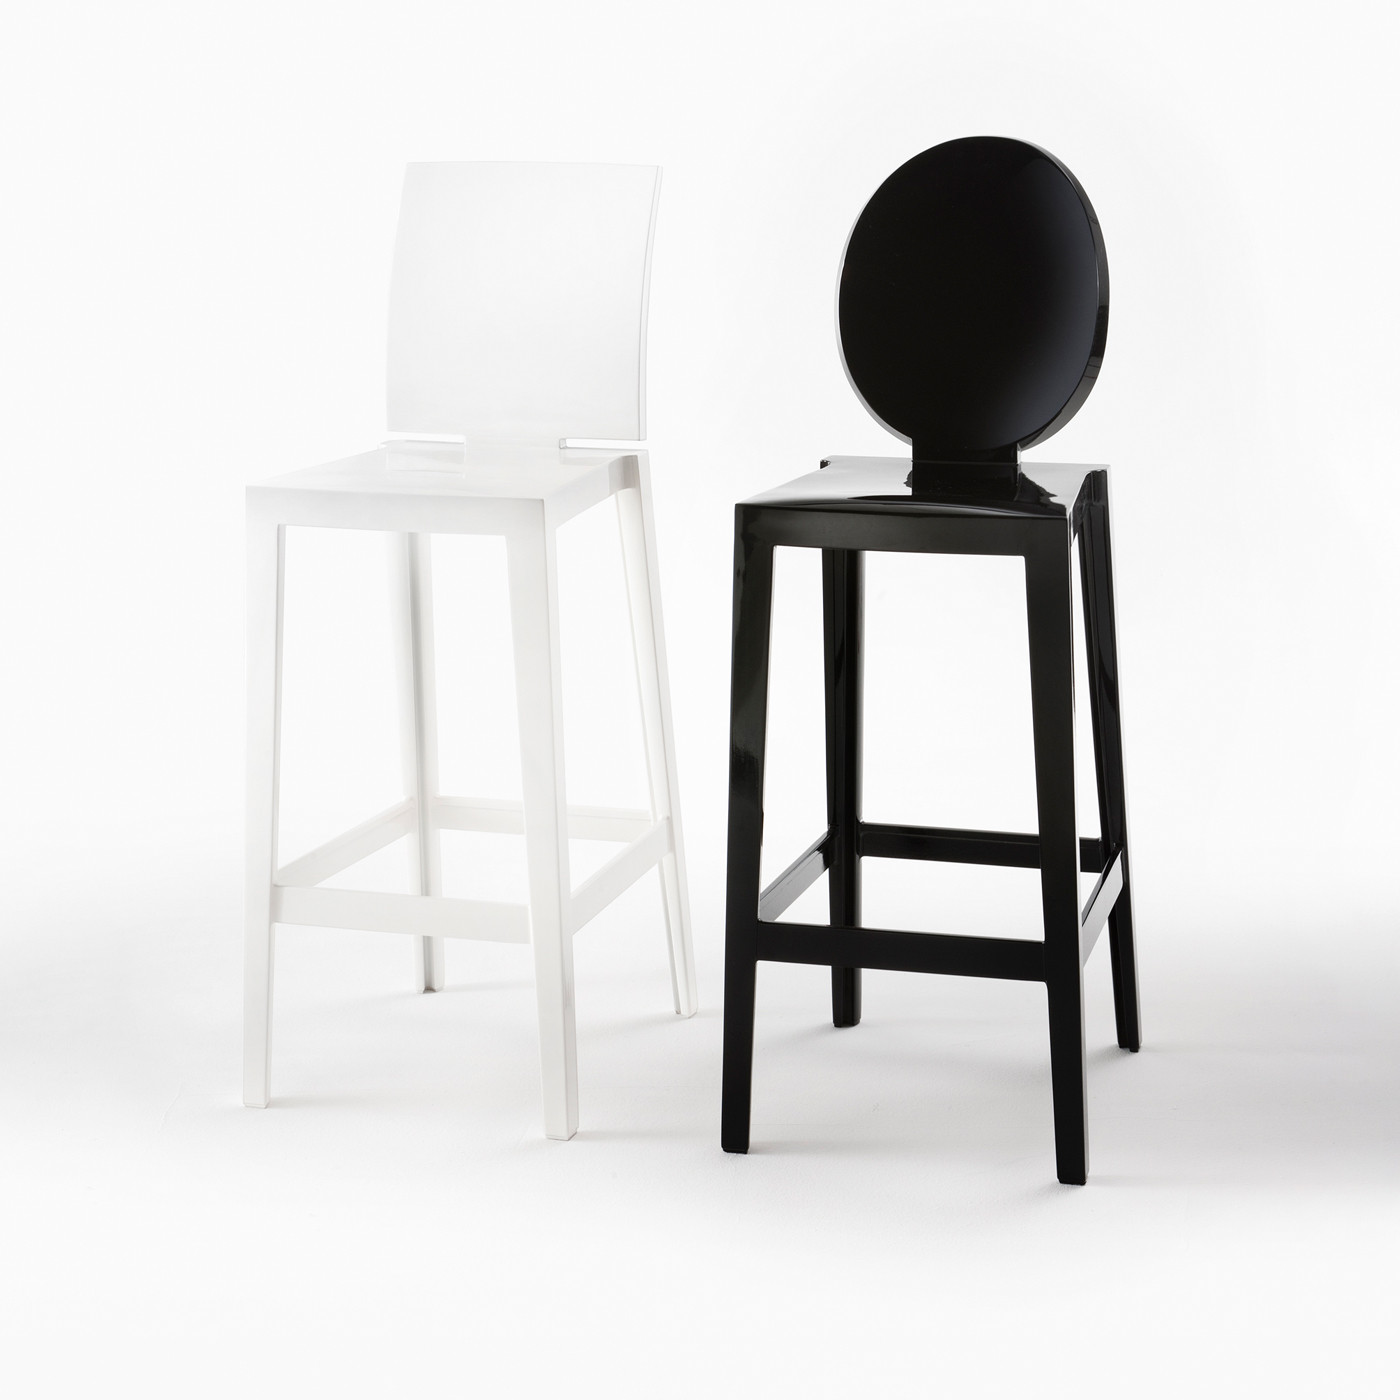 tabouret bar65 More d'assise Kartell hauteur MoreOne cm One Please de Ghost qSpUzVGM